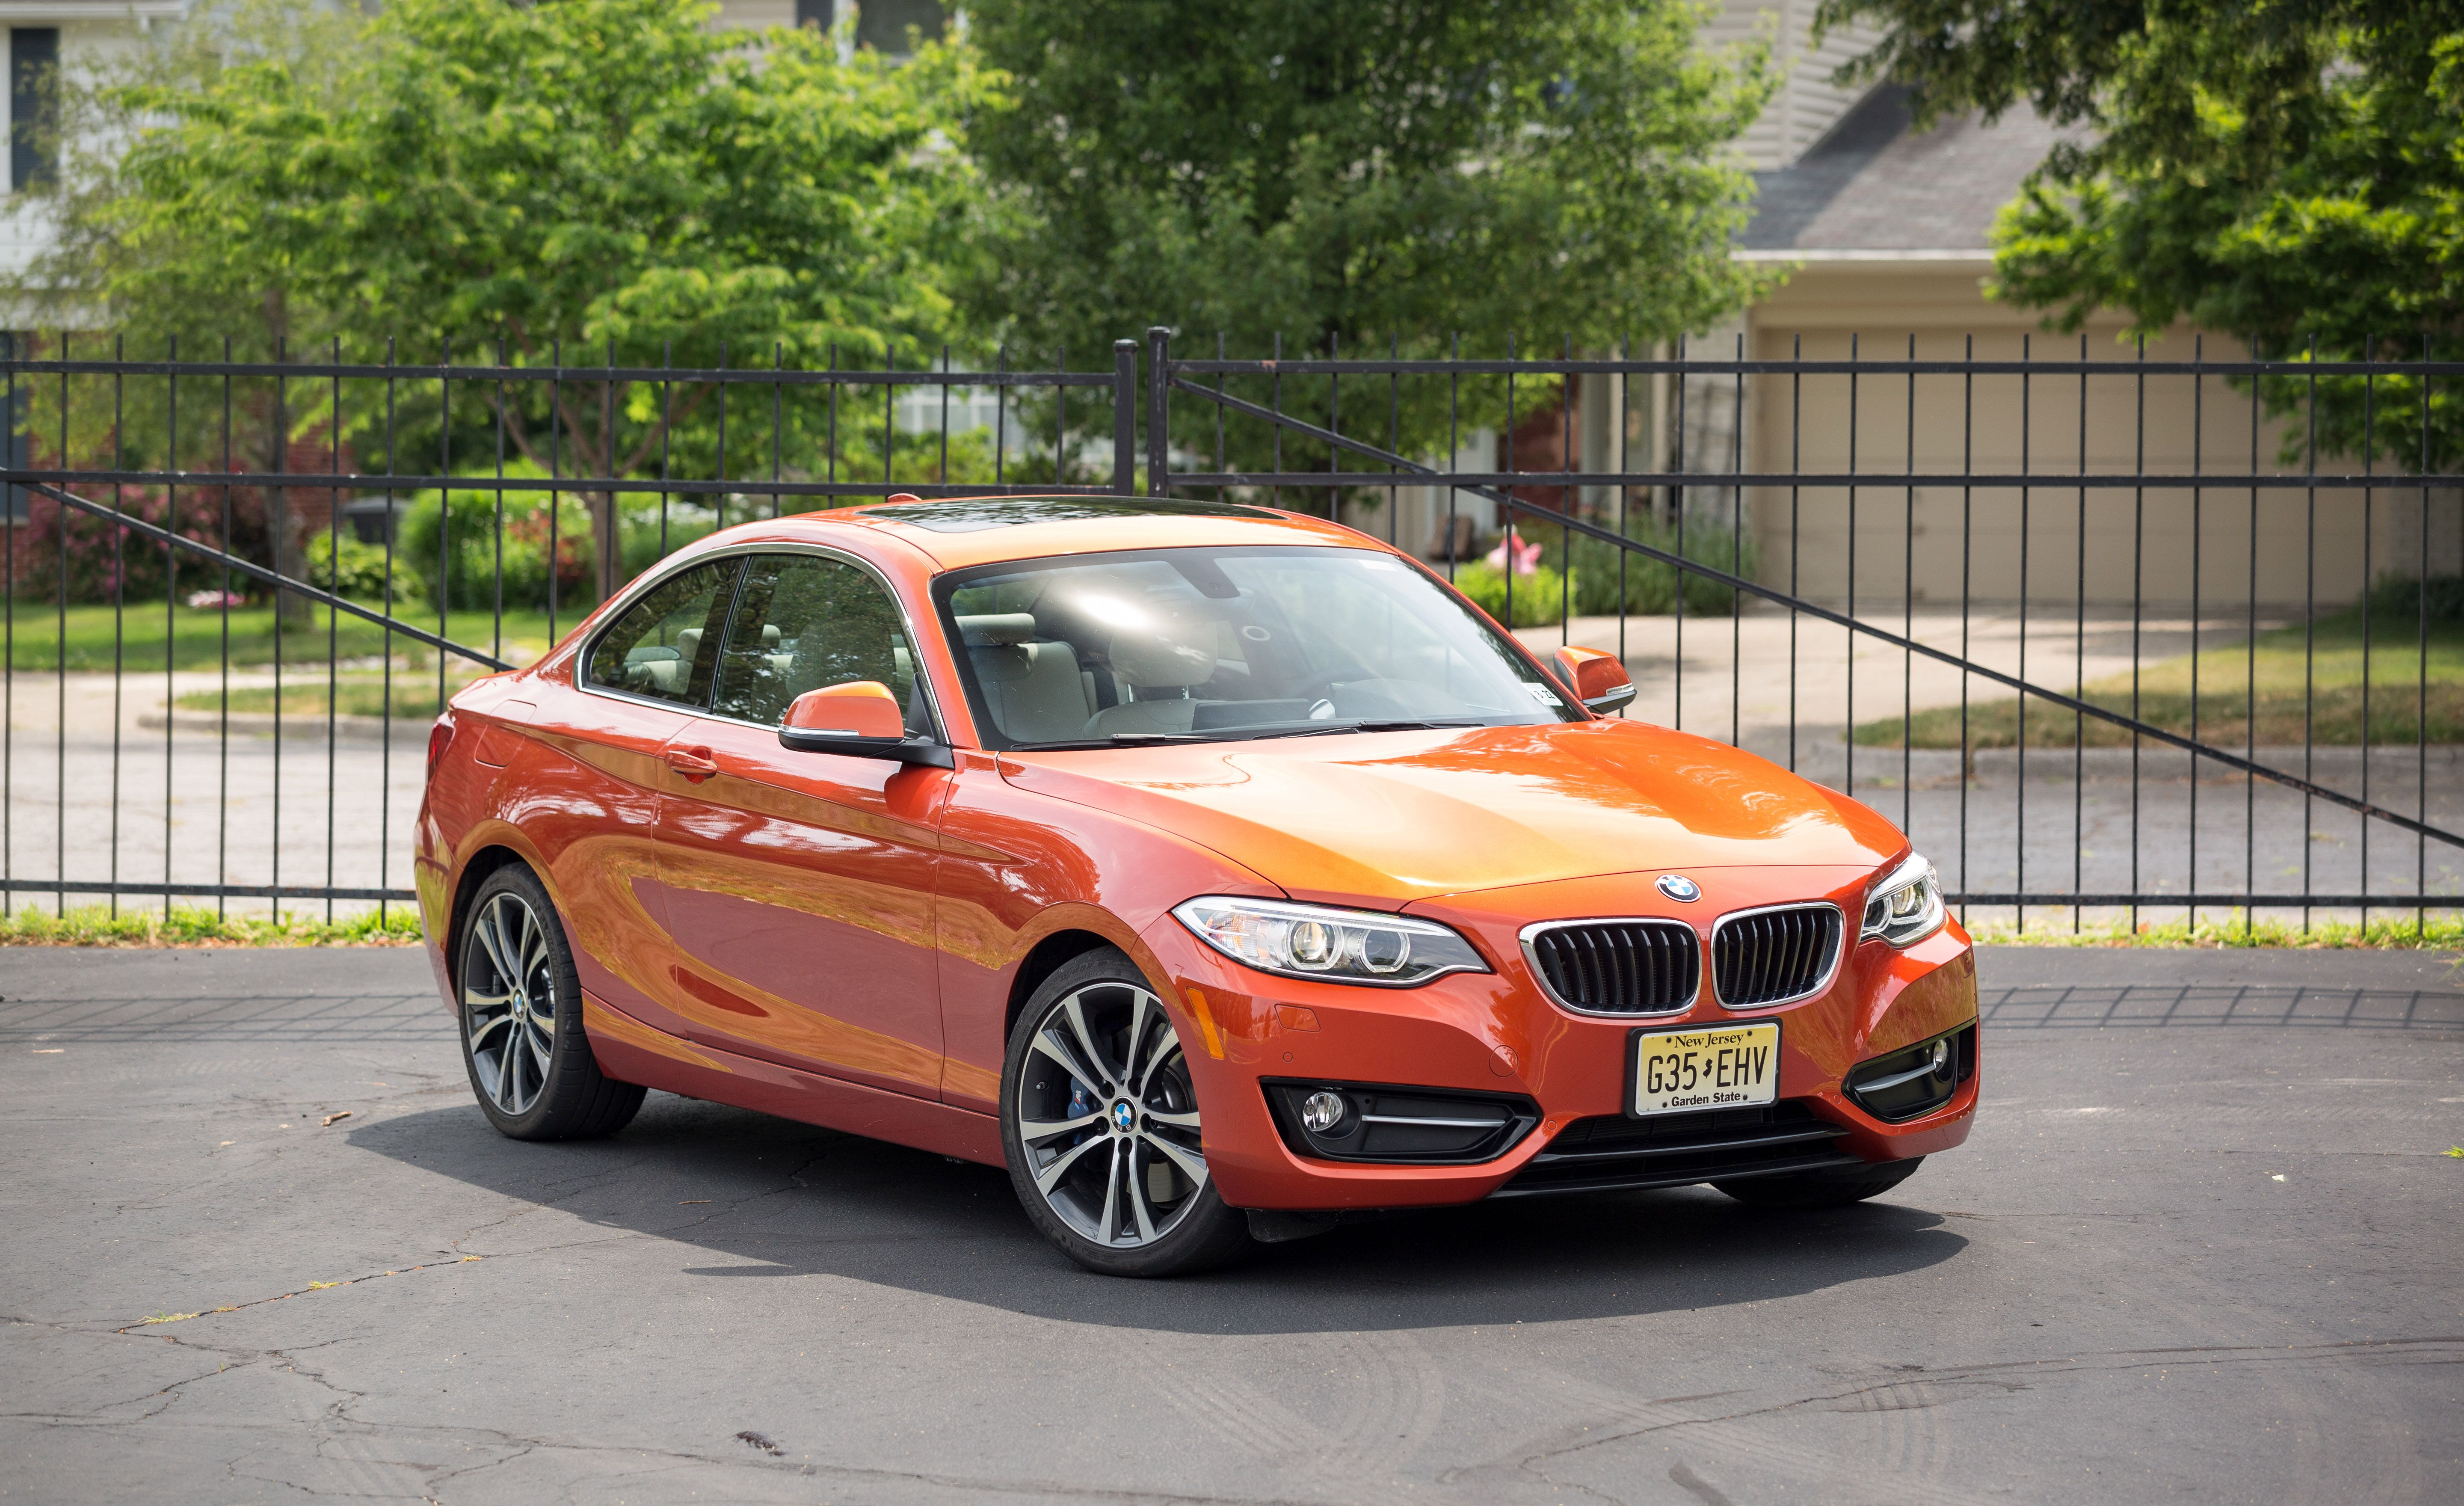 2019 Bmw 2 Series Review Pricing And Specs